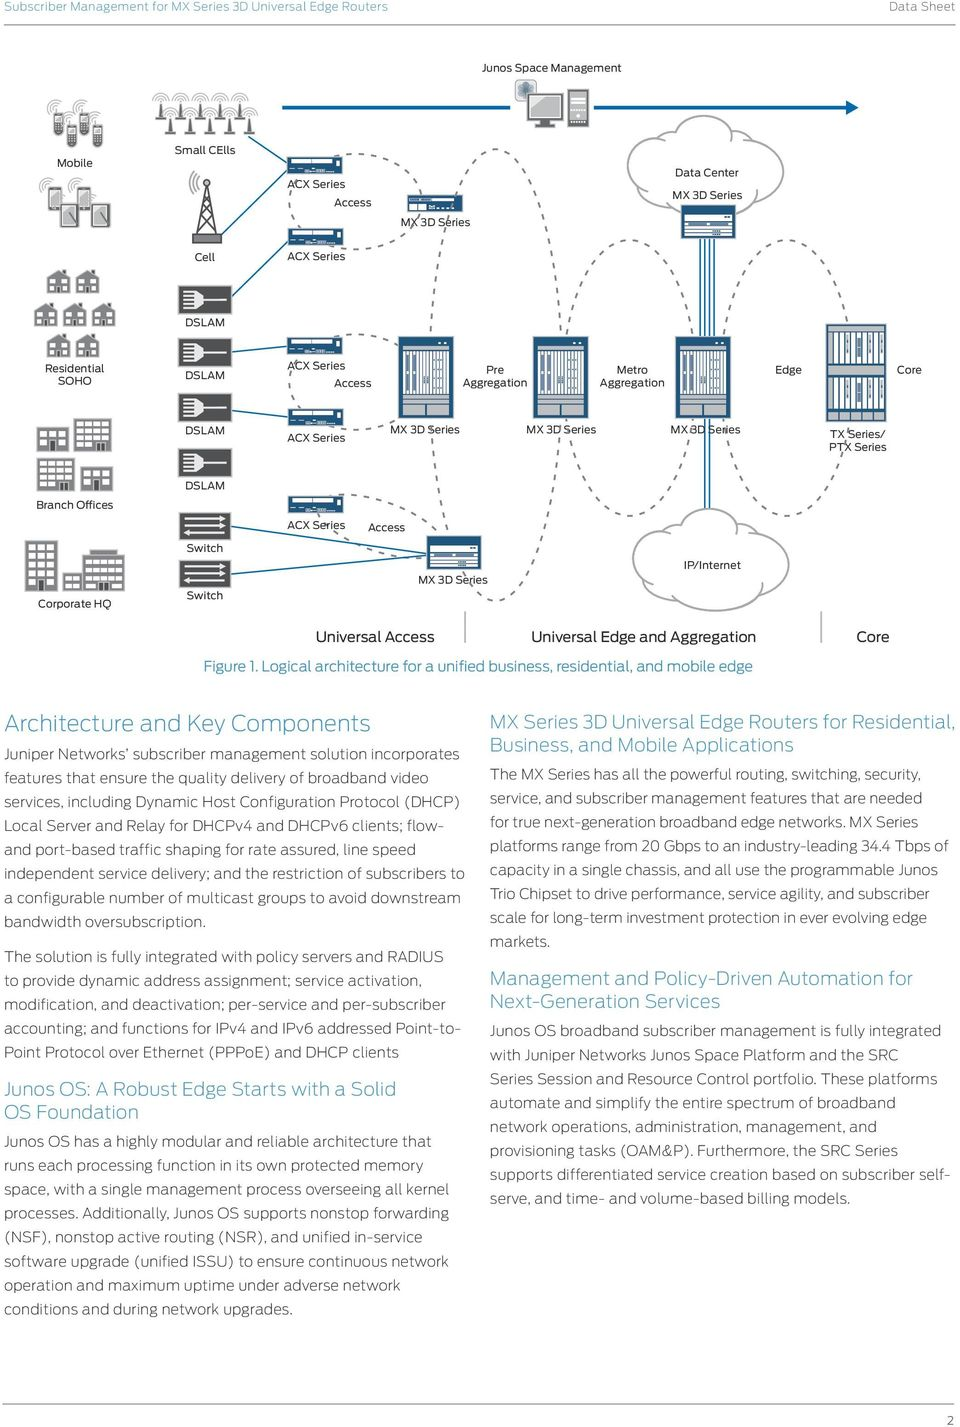 Logical architecture for a unified business, residential, and mobile edge Architecture and Key Components Juniper Networks subscriber management solution incorporates features that ensure the quality